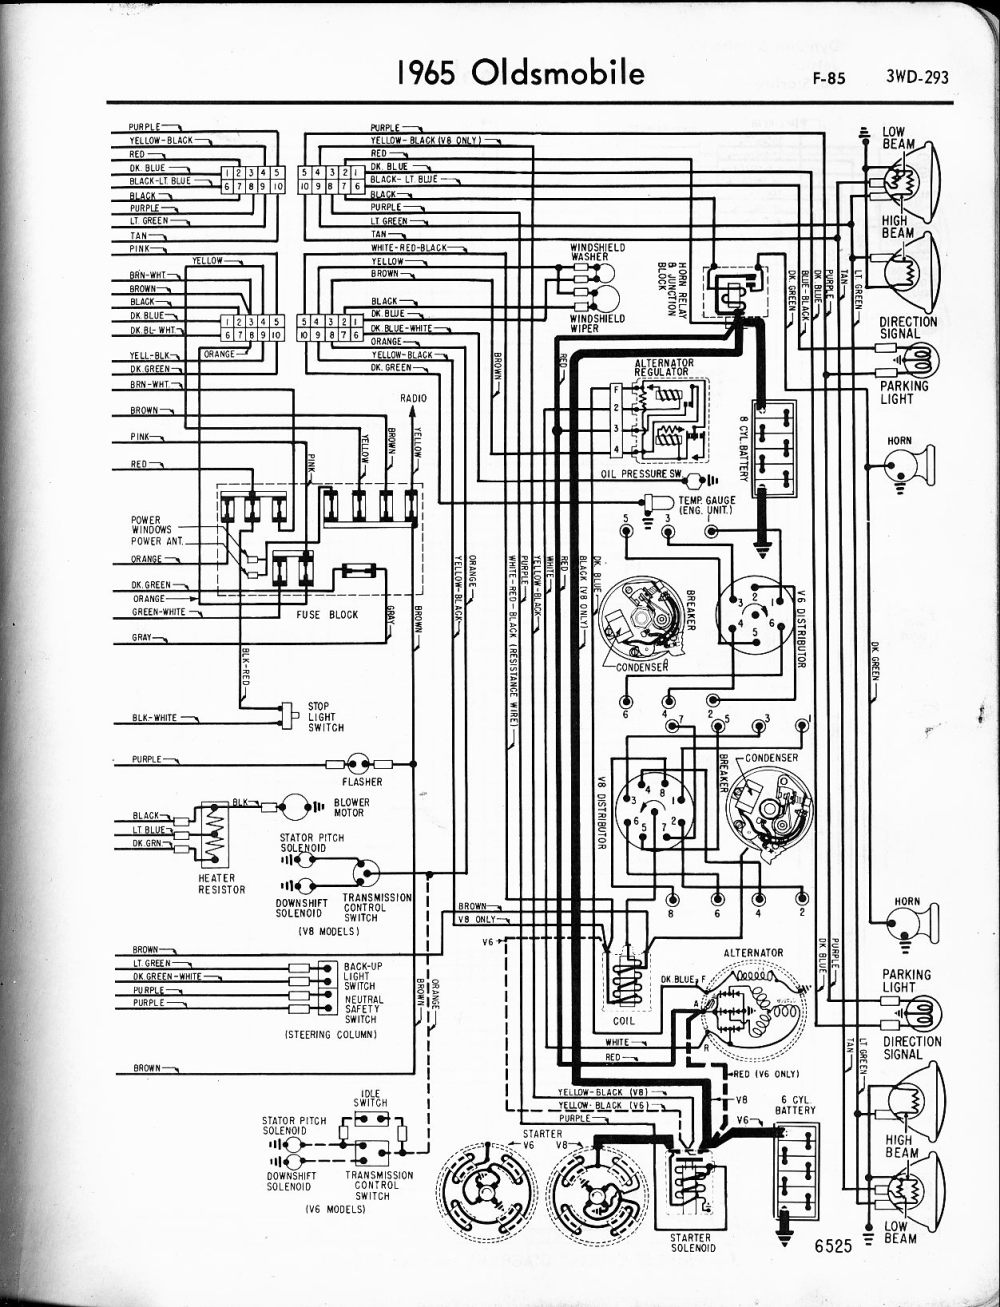 medium resolution of oldsmobile 88 engine diagram wiring diagram centre 1988 oldsmobile delta 88 engine diagram oldsmobile 88 engine